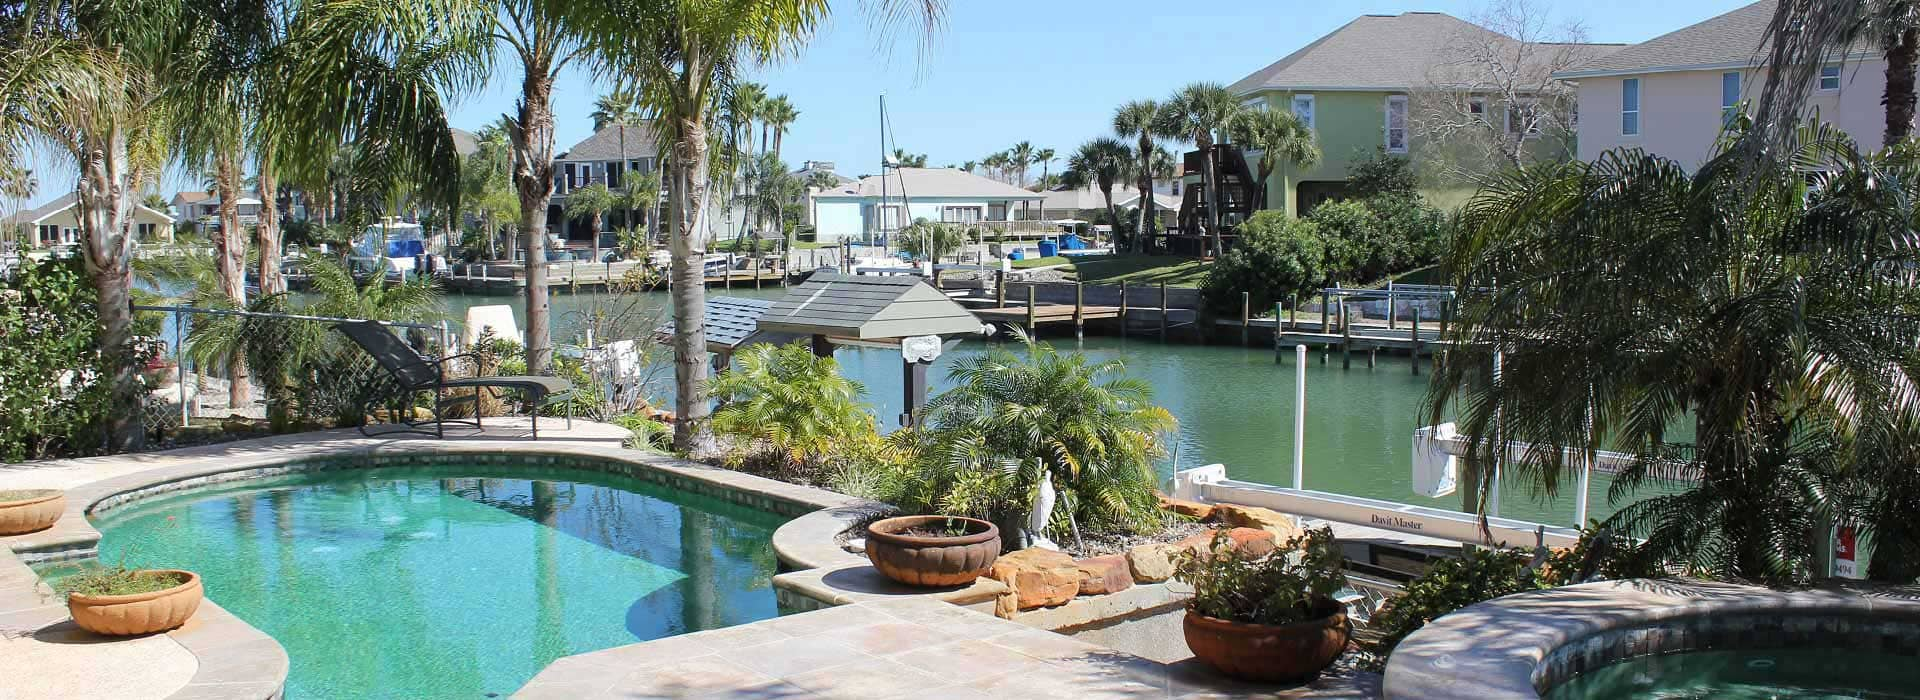 Rockport Vacation Als Port Aransas Condos Miss Kittys Fishing Getaways